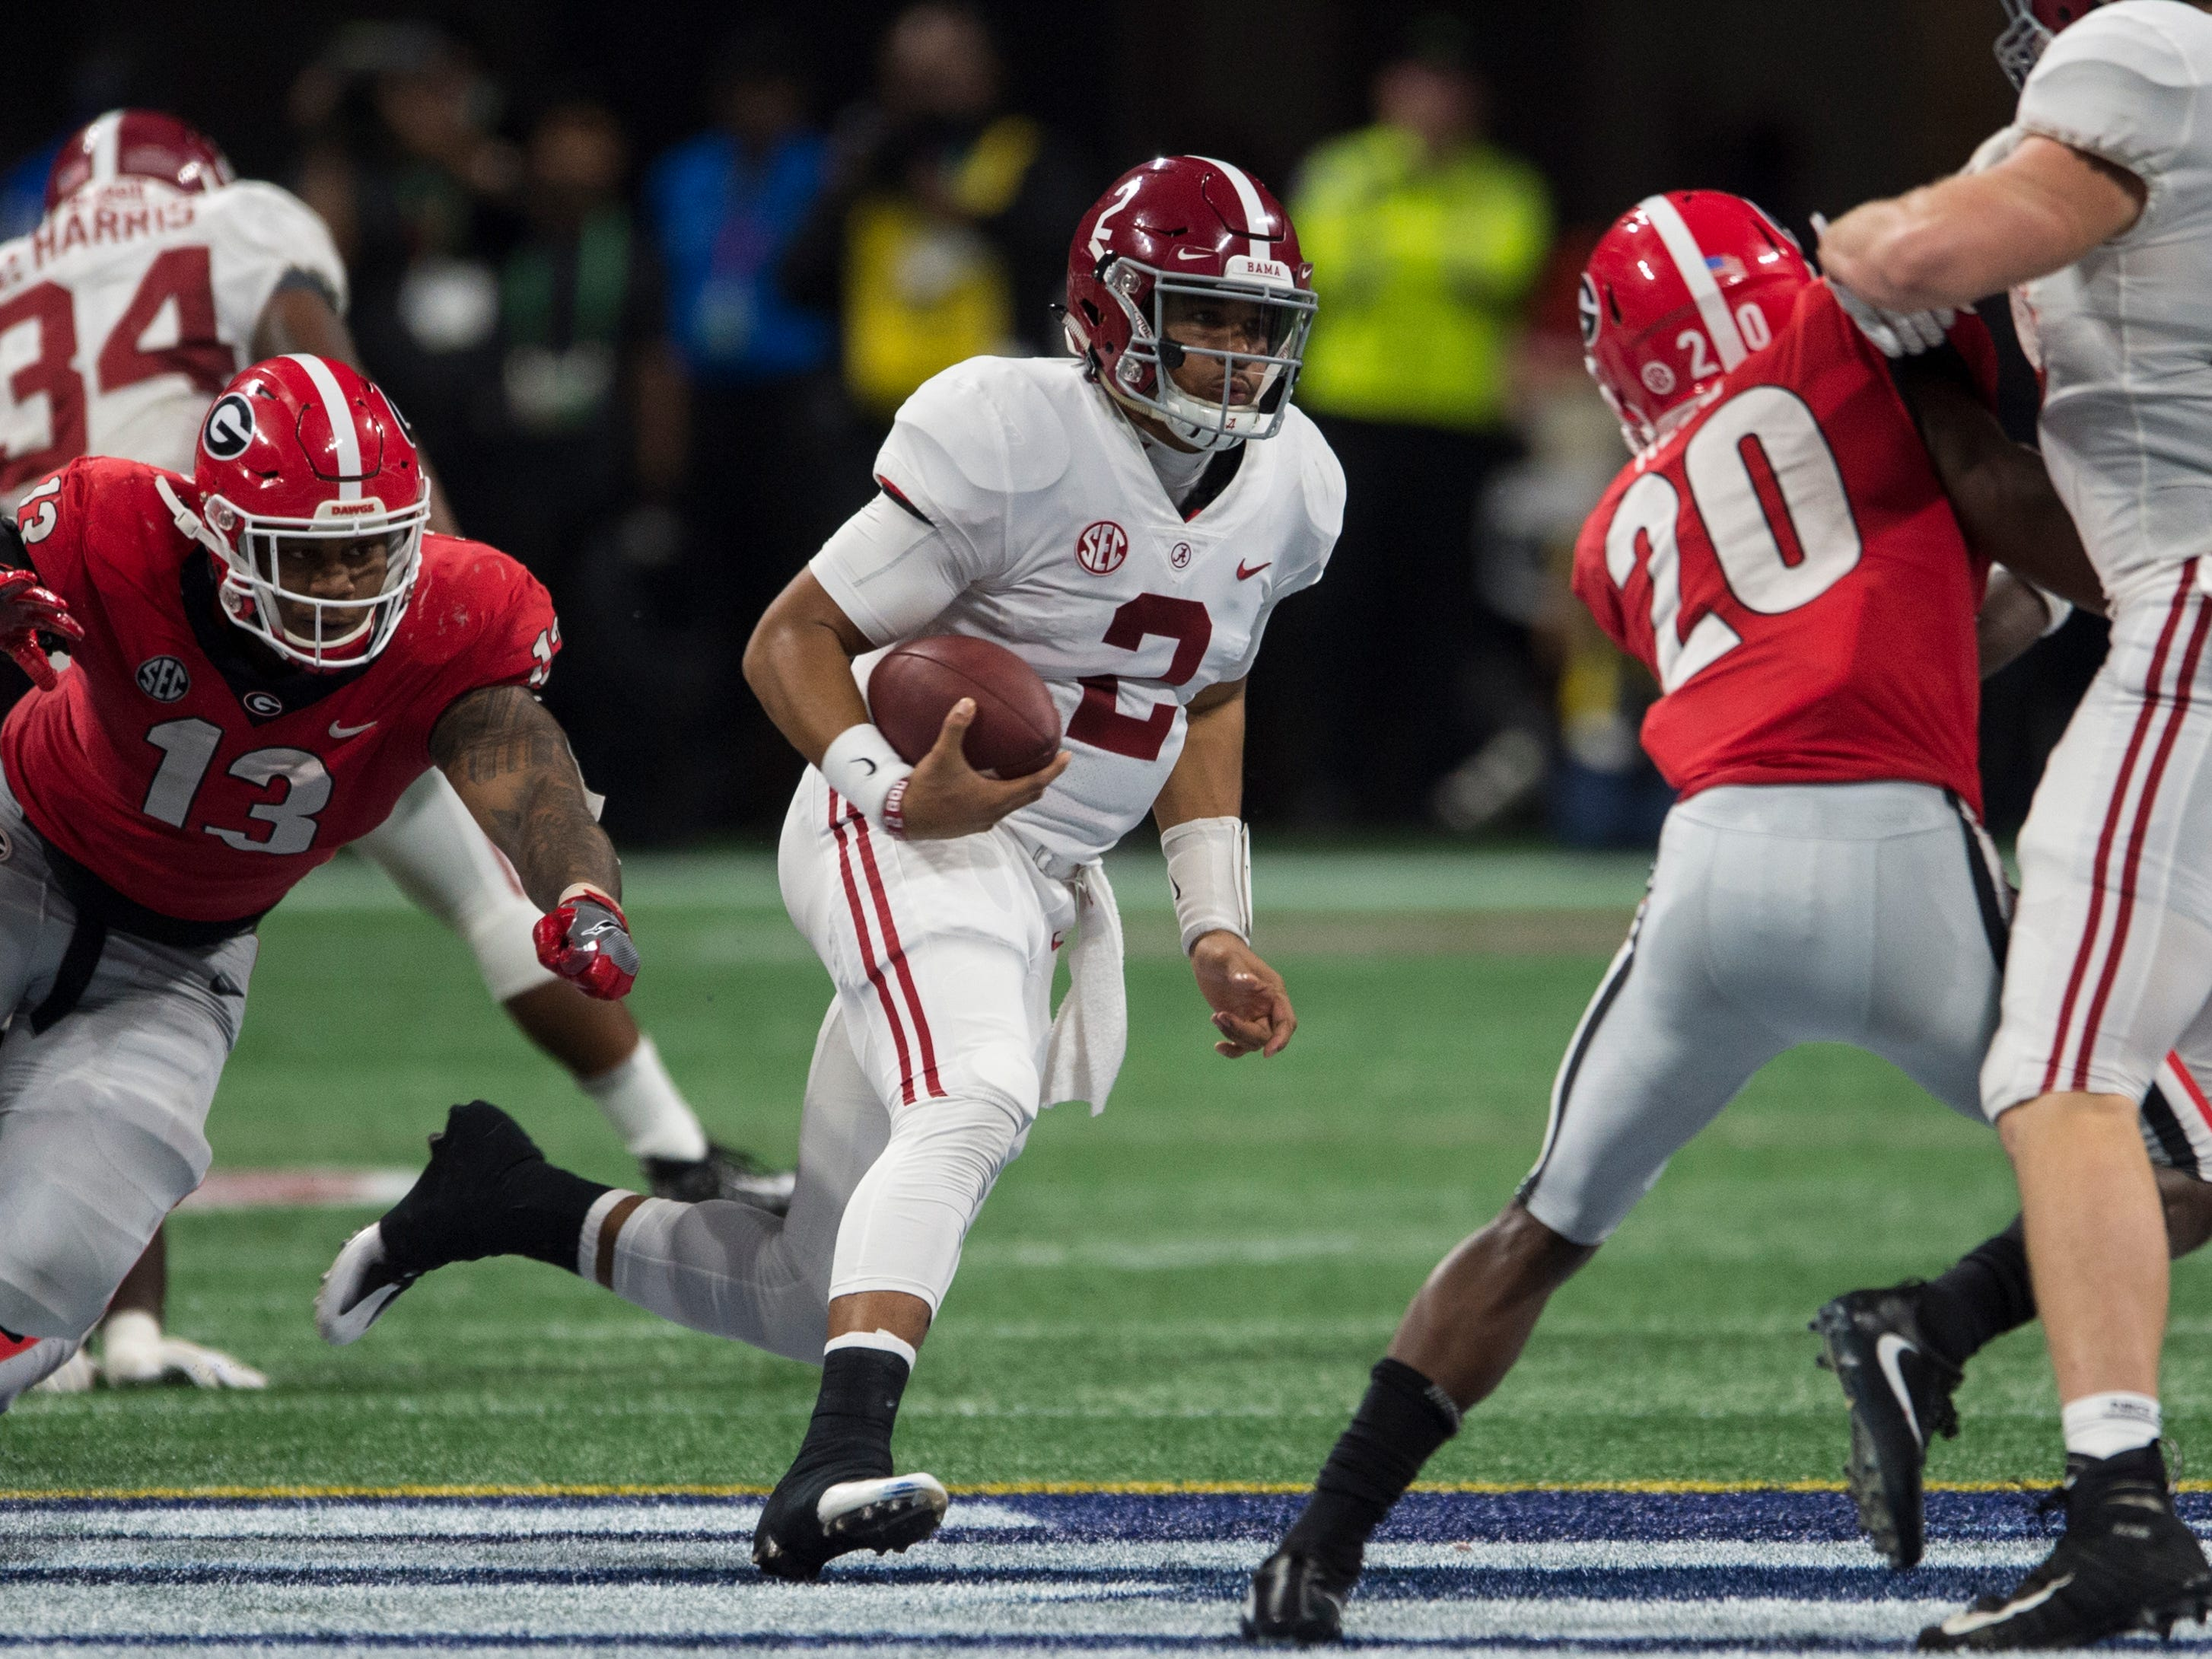 Alabama quarterback Jalen Hurts (2) runs the ball down field during the SEC Championship game at Mercedes-Benz Stadium in Atlanta, Ga., on Saturday Dec. 1, 2018. Alabama defeated Georgia 35-28.